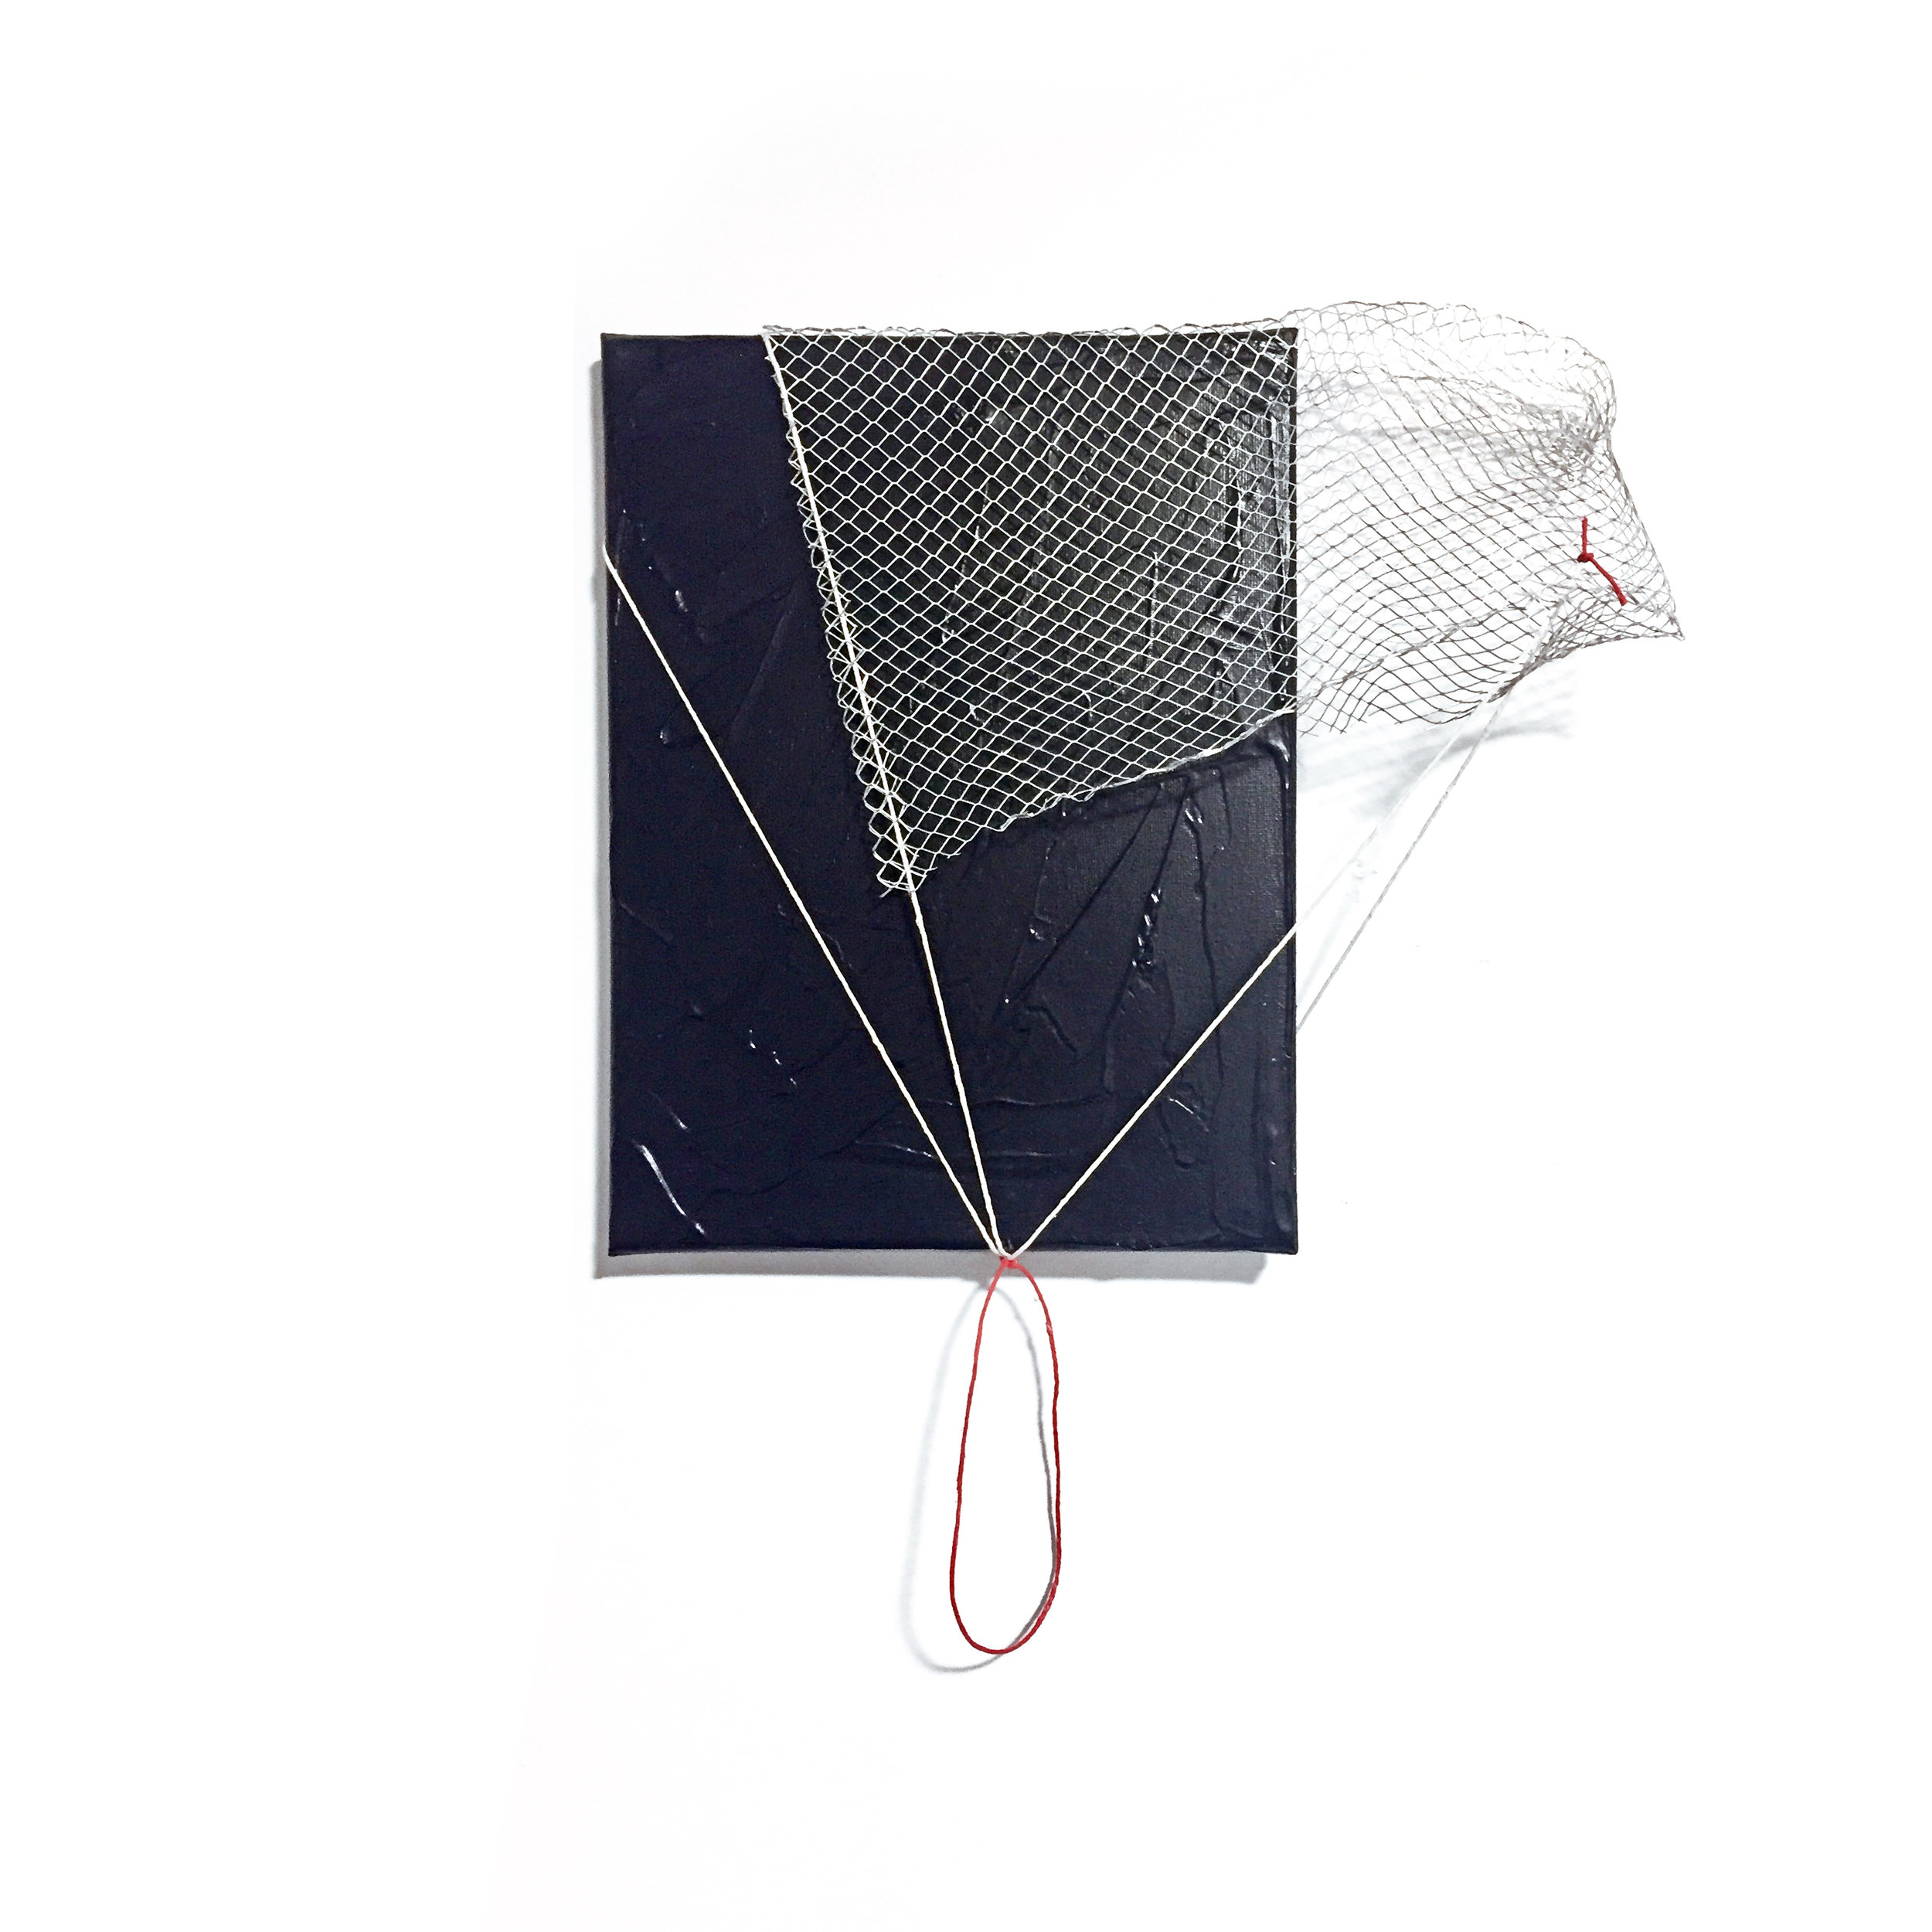 "Untitled (Black, Red and White), 2018, acrylic, string and wire mesh on canvas, 18"" x 14"" x 4"""